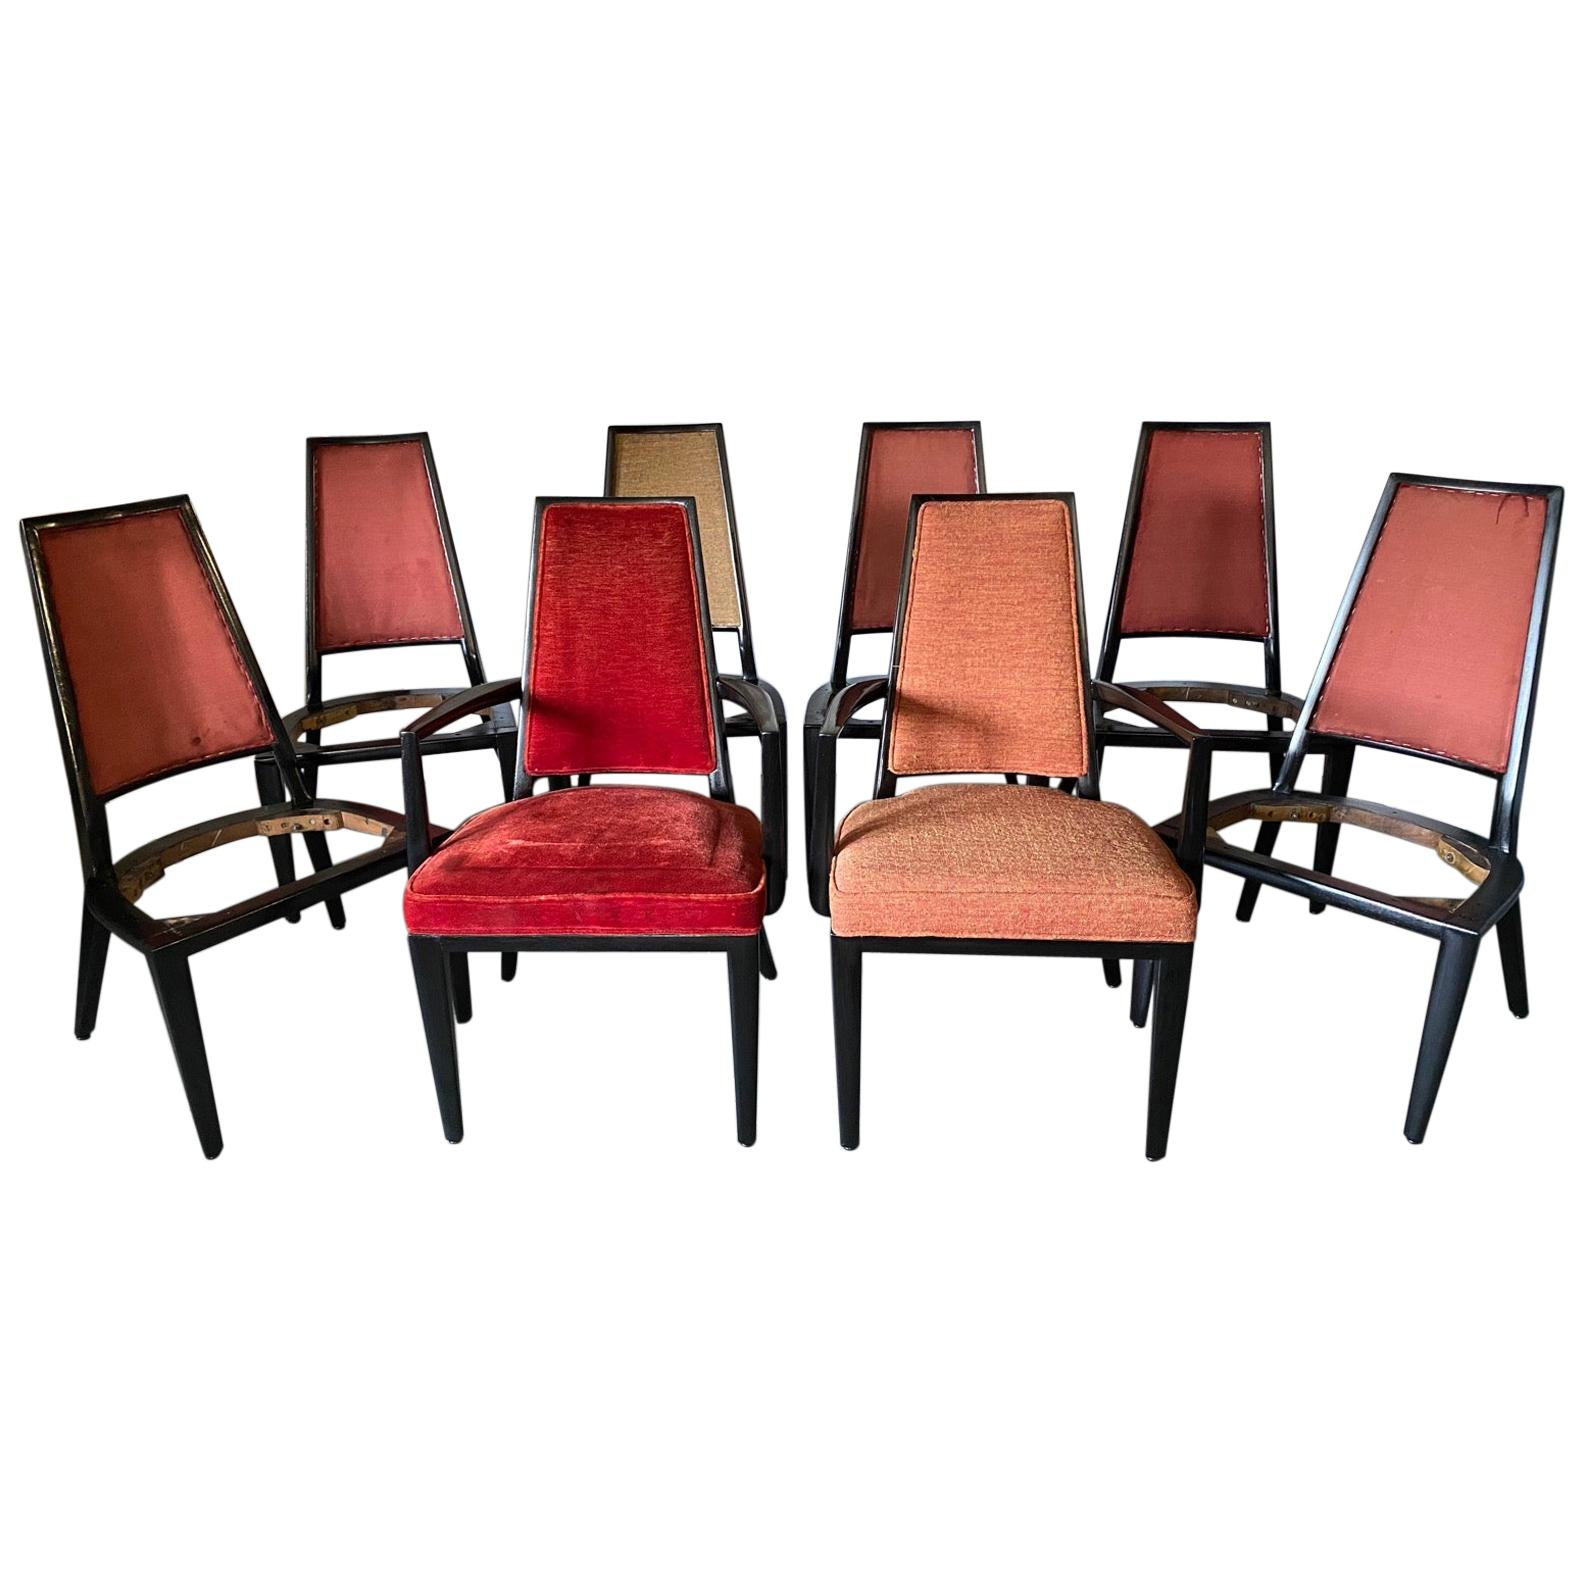 Set of 8 French Art Deco Dining Chairs